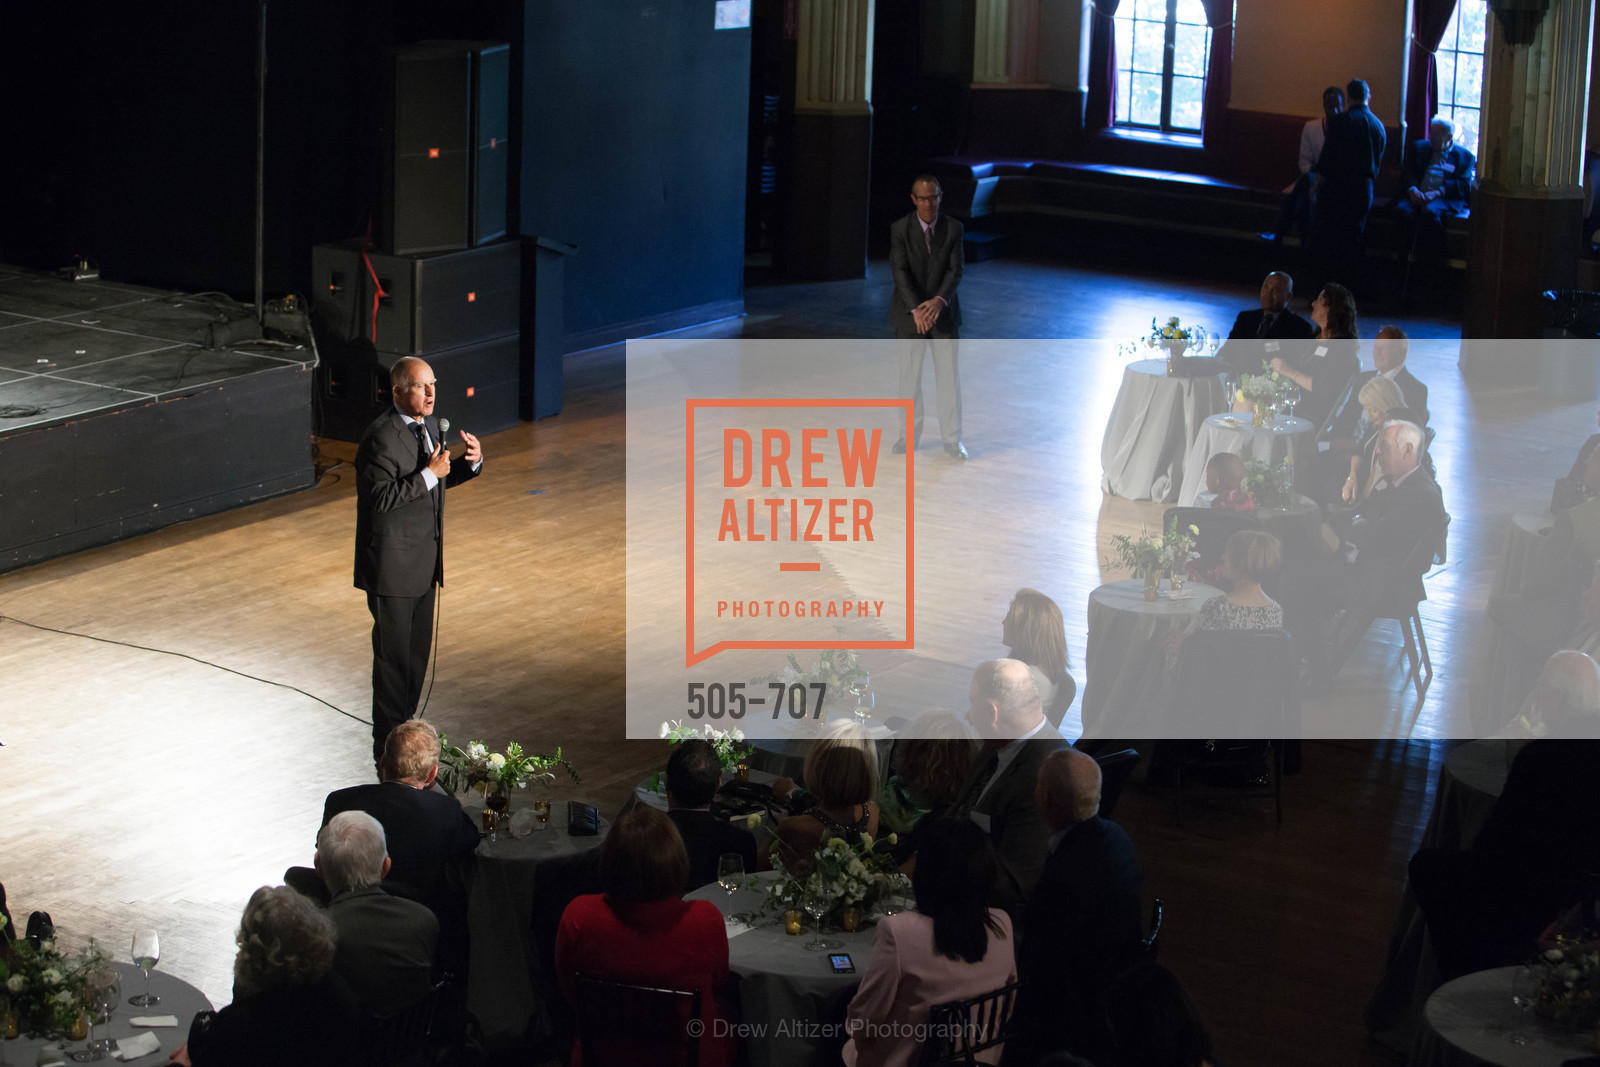 Gov. Jerry Brown, OAKLAND SCHOOL FOR THE ARTS Gala 2015 with Governor Jerry Brown, US, May 8th, 2015,Drew Altizer, Drew Altizer Photography, full-service agency, private events, San Francisco photographer, photographer california